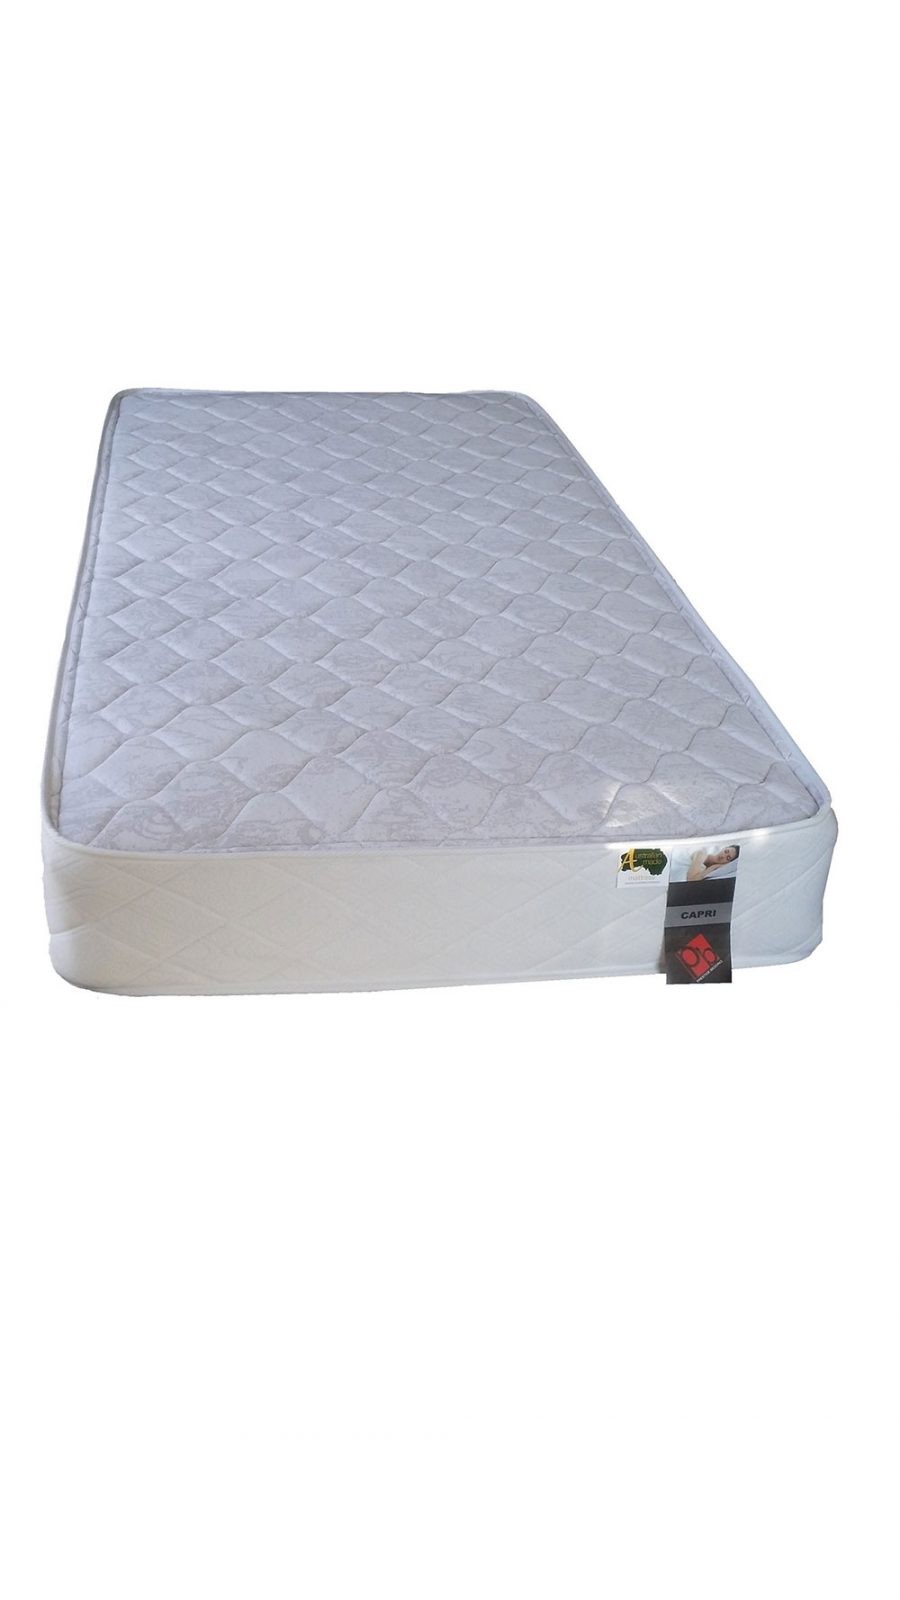 Capri Mattress and Bed Base Package Deal